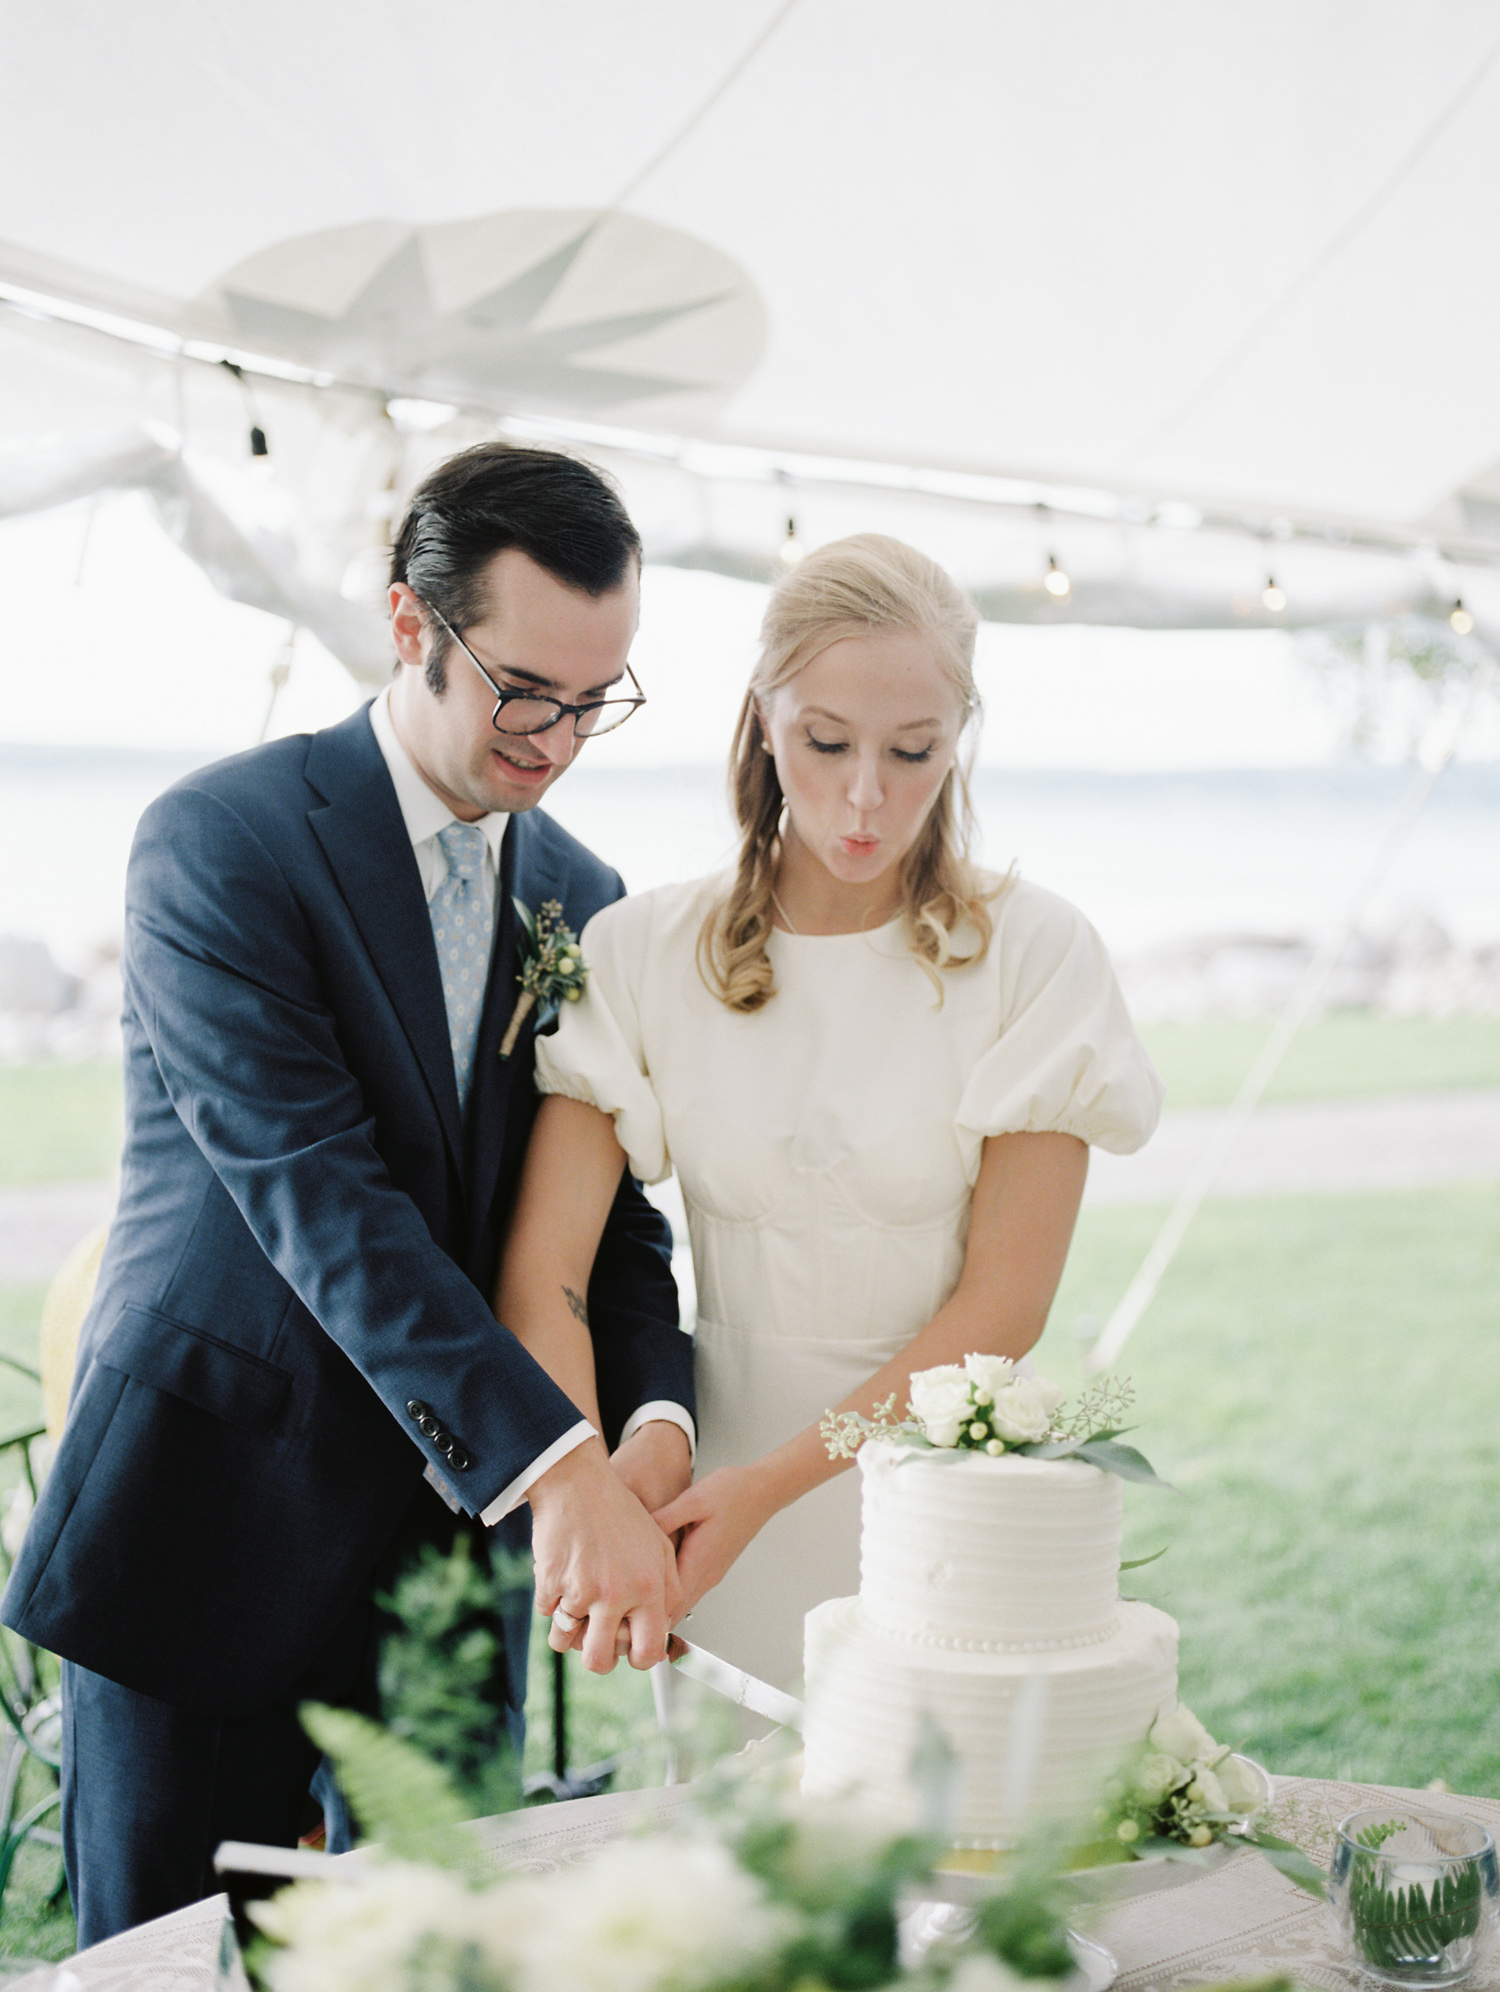 a stylish couple cuts their wedding cake under a sailcloth tent in Petoskey, Northern Michigan